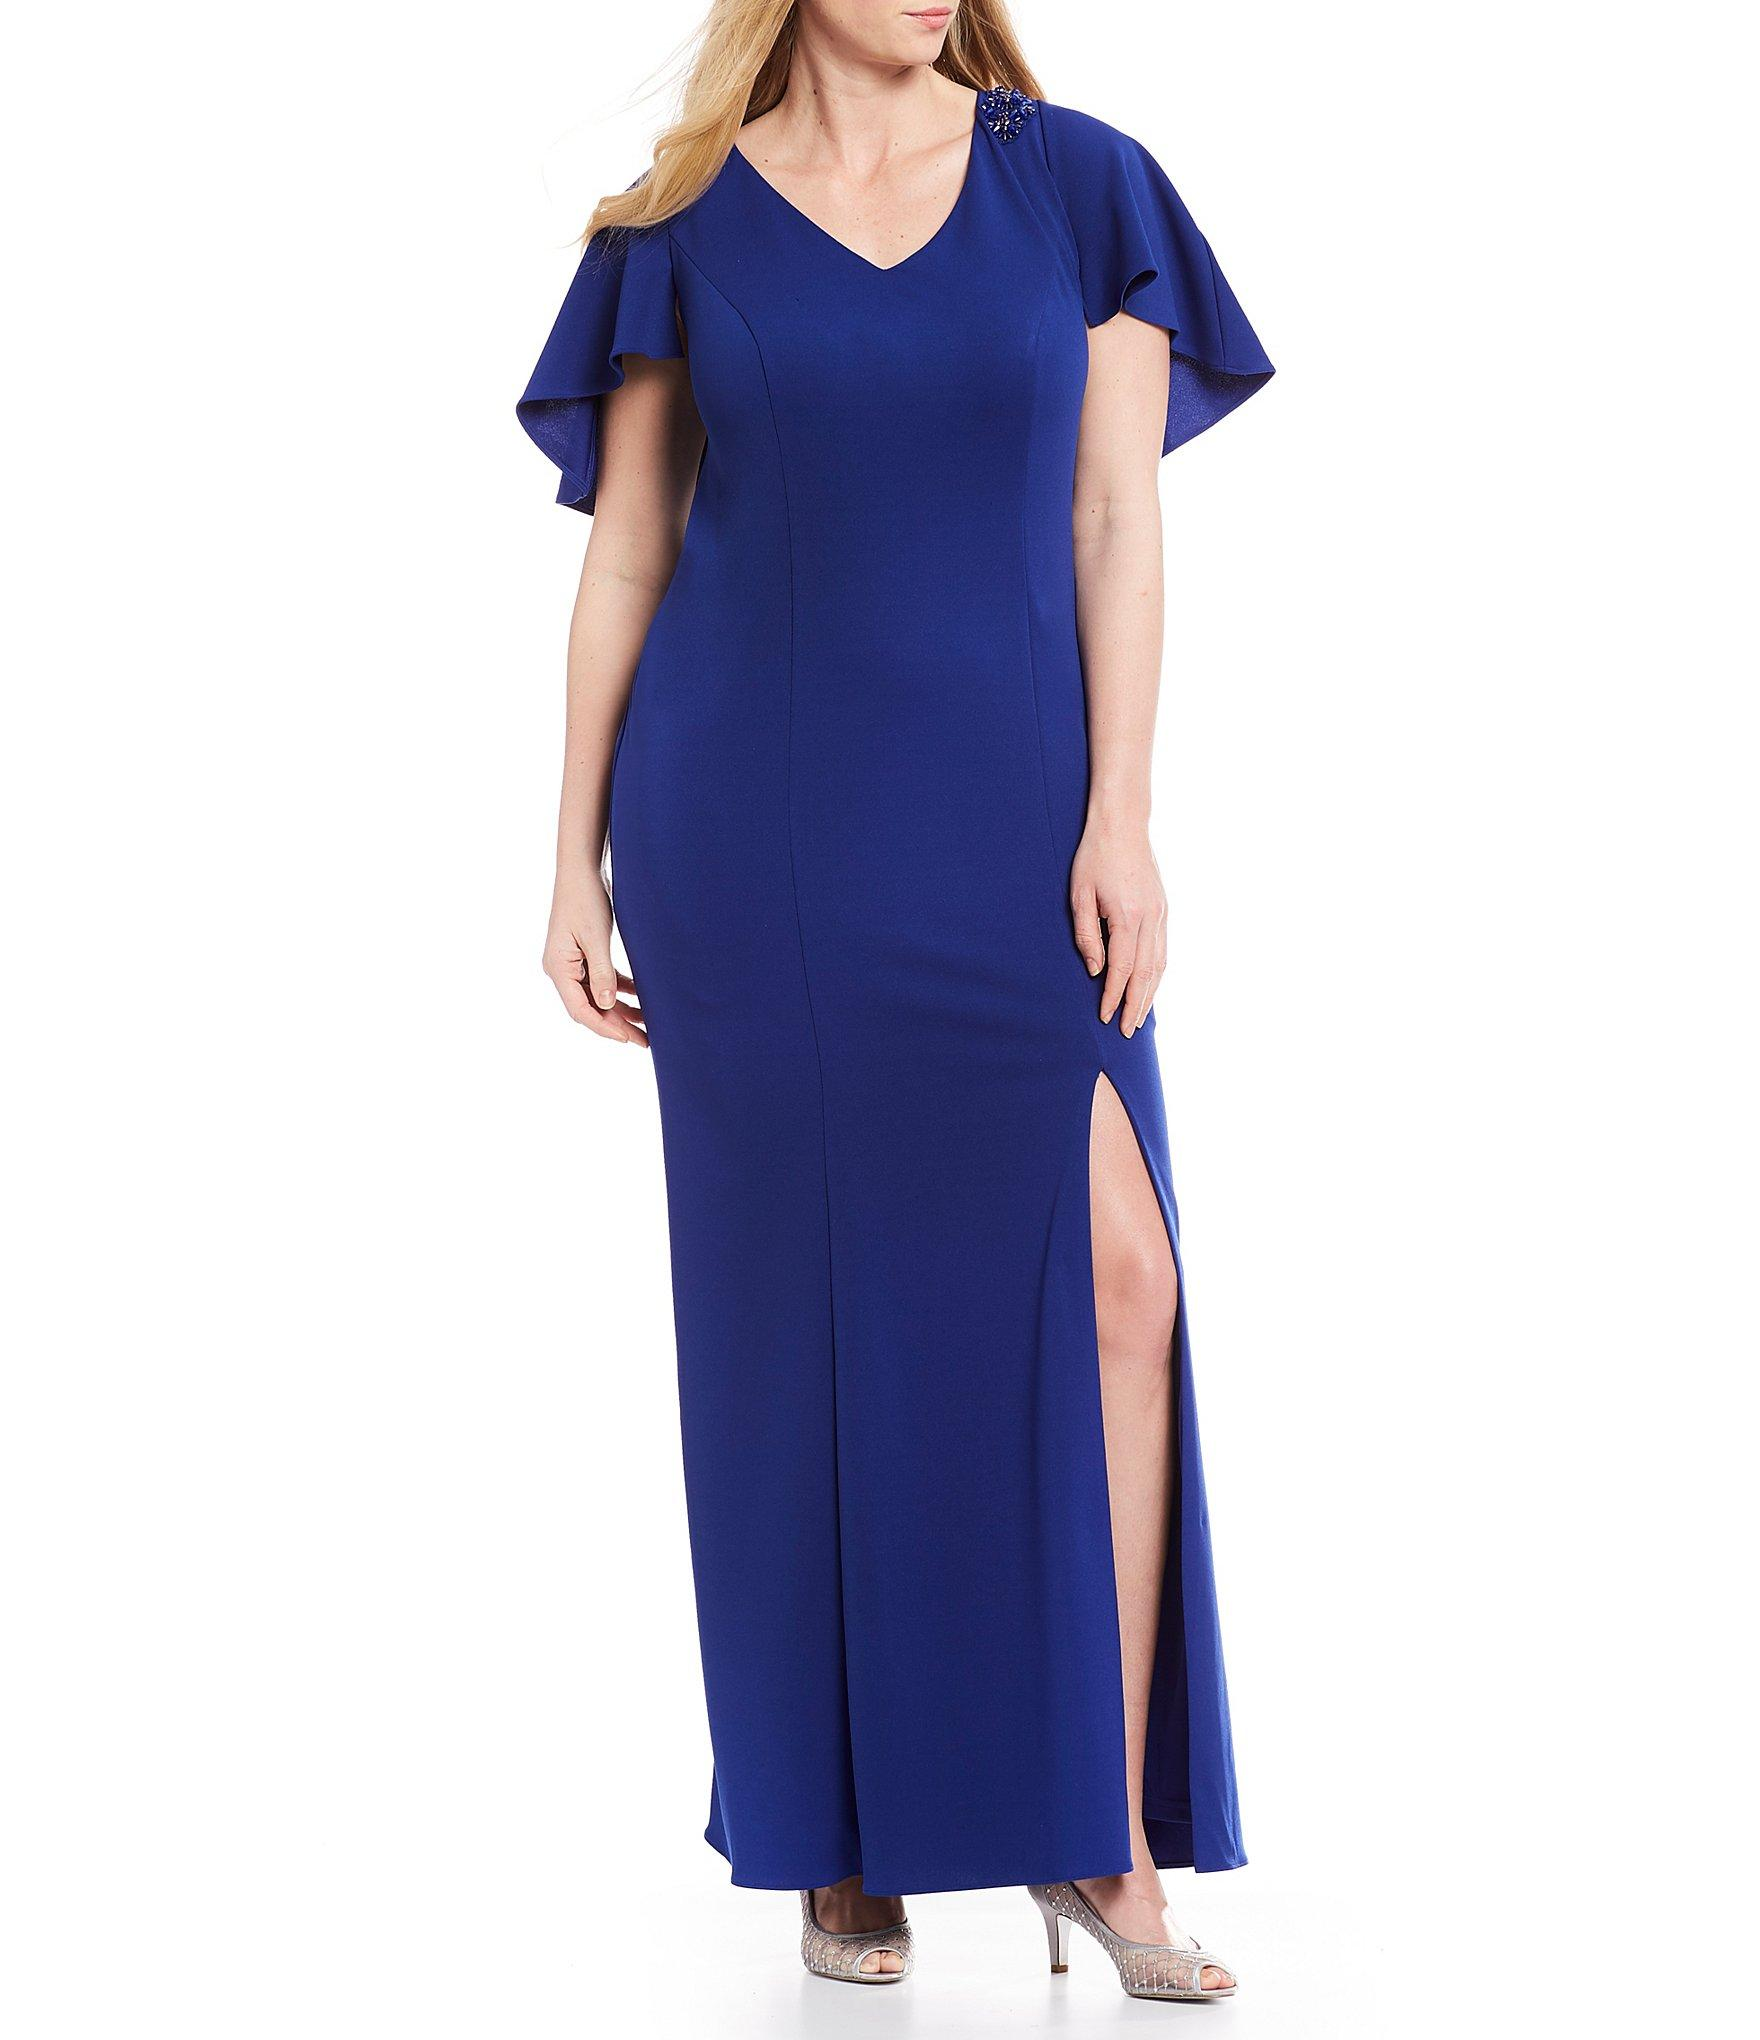 57842496c9233 Lyst - Adrianna Papell Plus Size Capelet Front Slit Crepe Gown in Blue